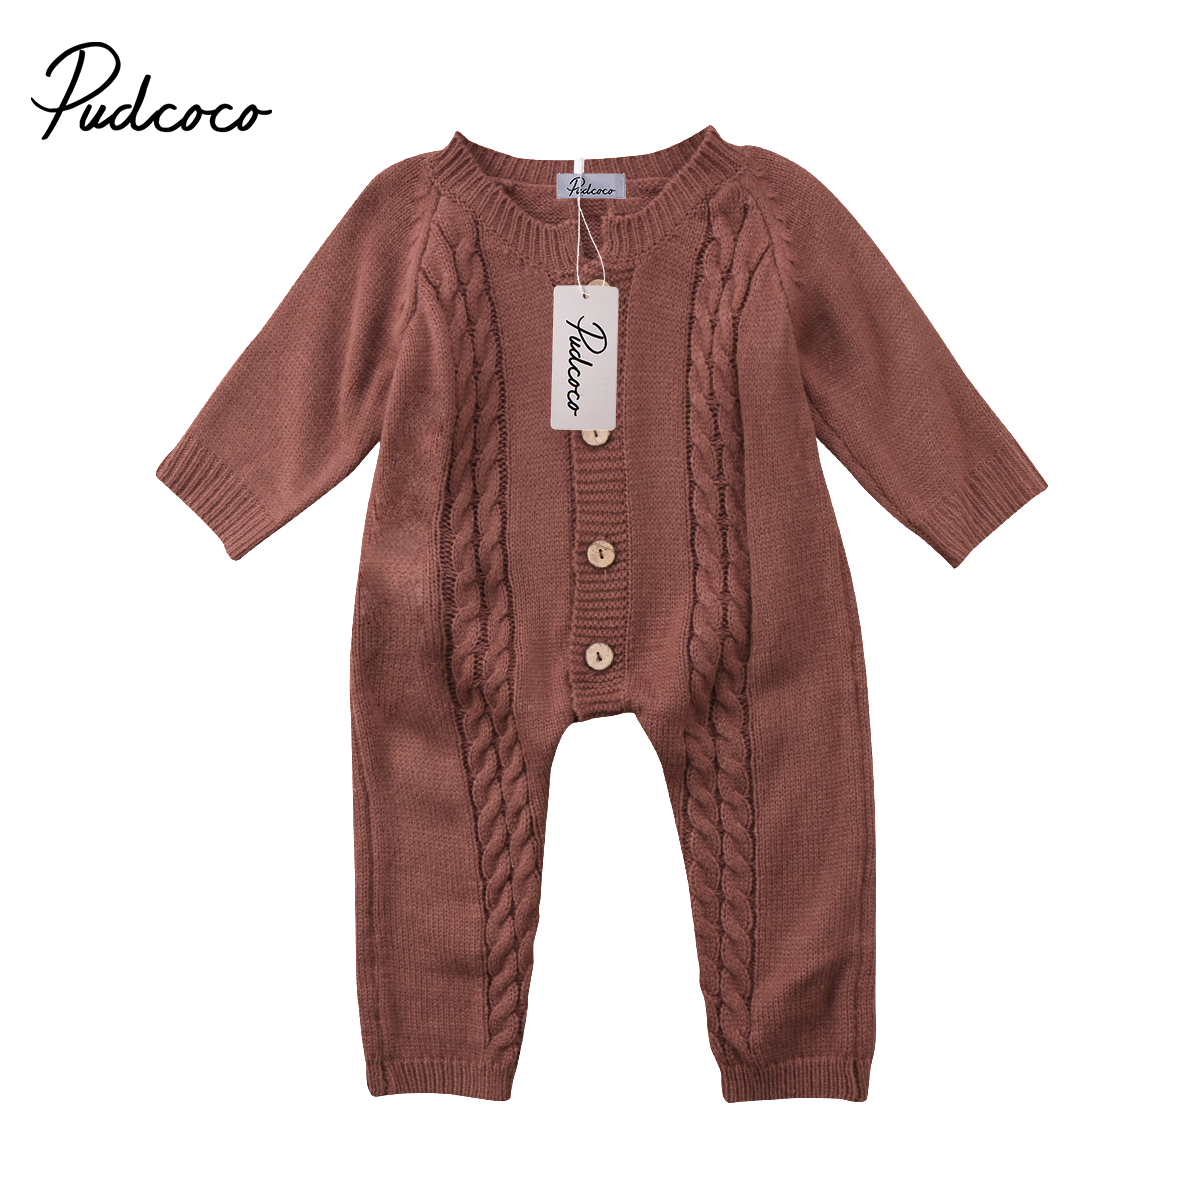 Newborn Kids Infant Baby Boy Girl Romper Jumpsuit Long Sleeve Rompers Warm Clothes Outfits Rompers Brown Green White 0-18M 3pcs set newborn infant baby boy girl clothes 2017 summer short sleeve leopard floral romper bodysuit headband shoes outfits